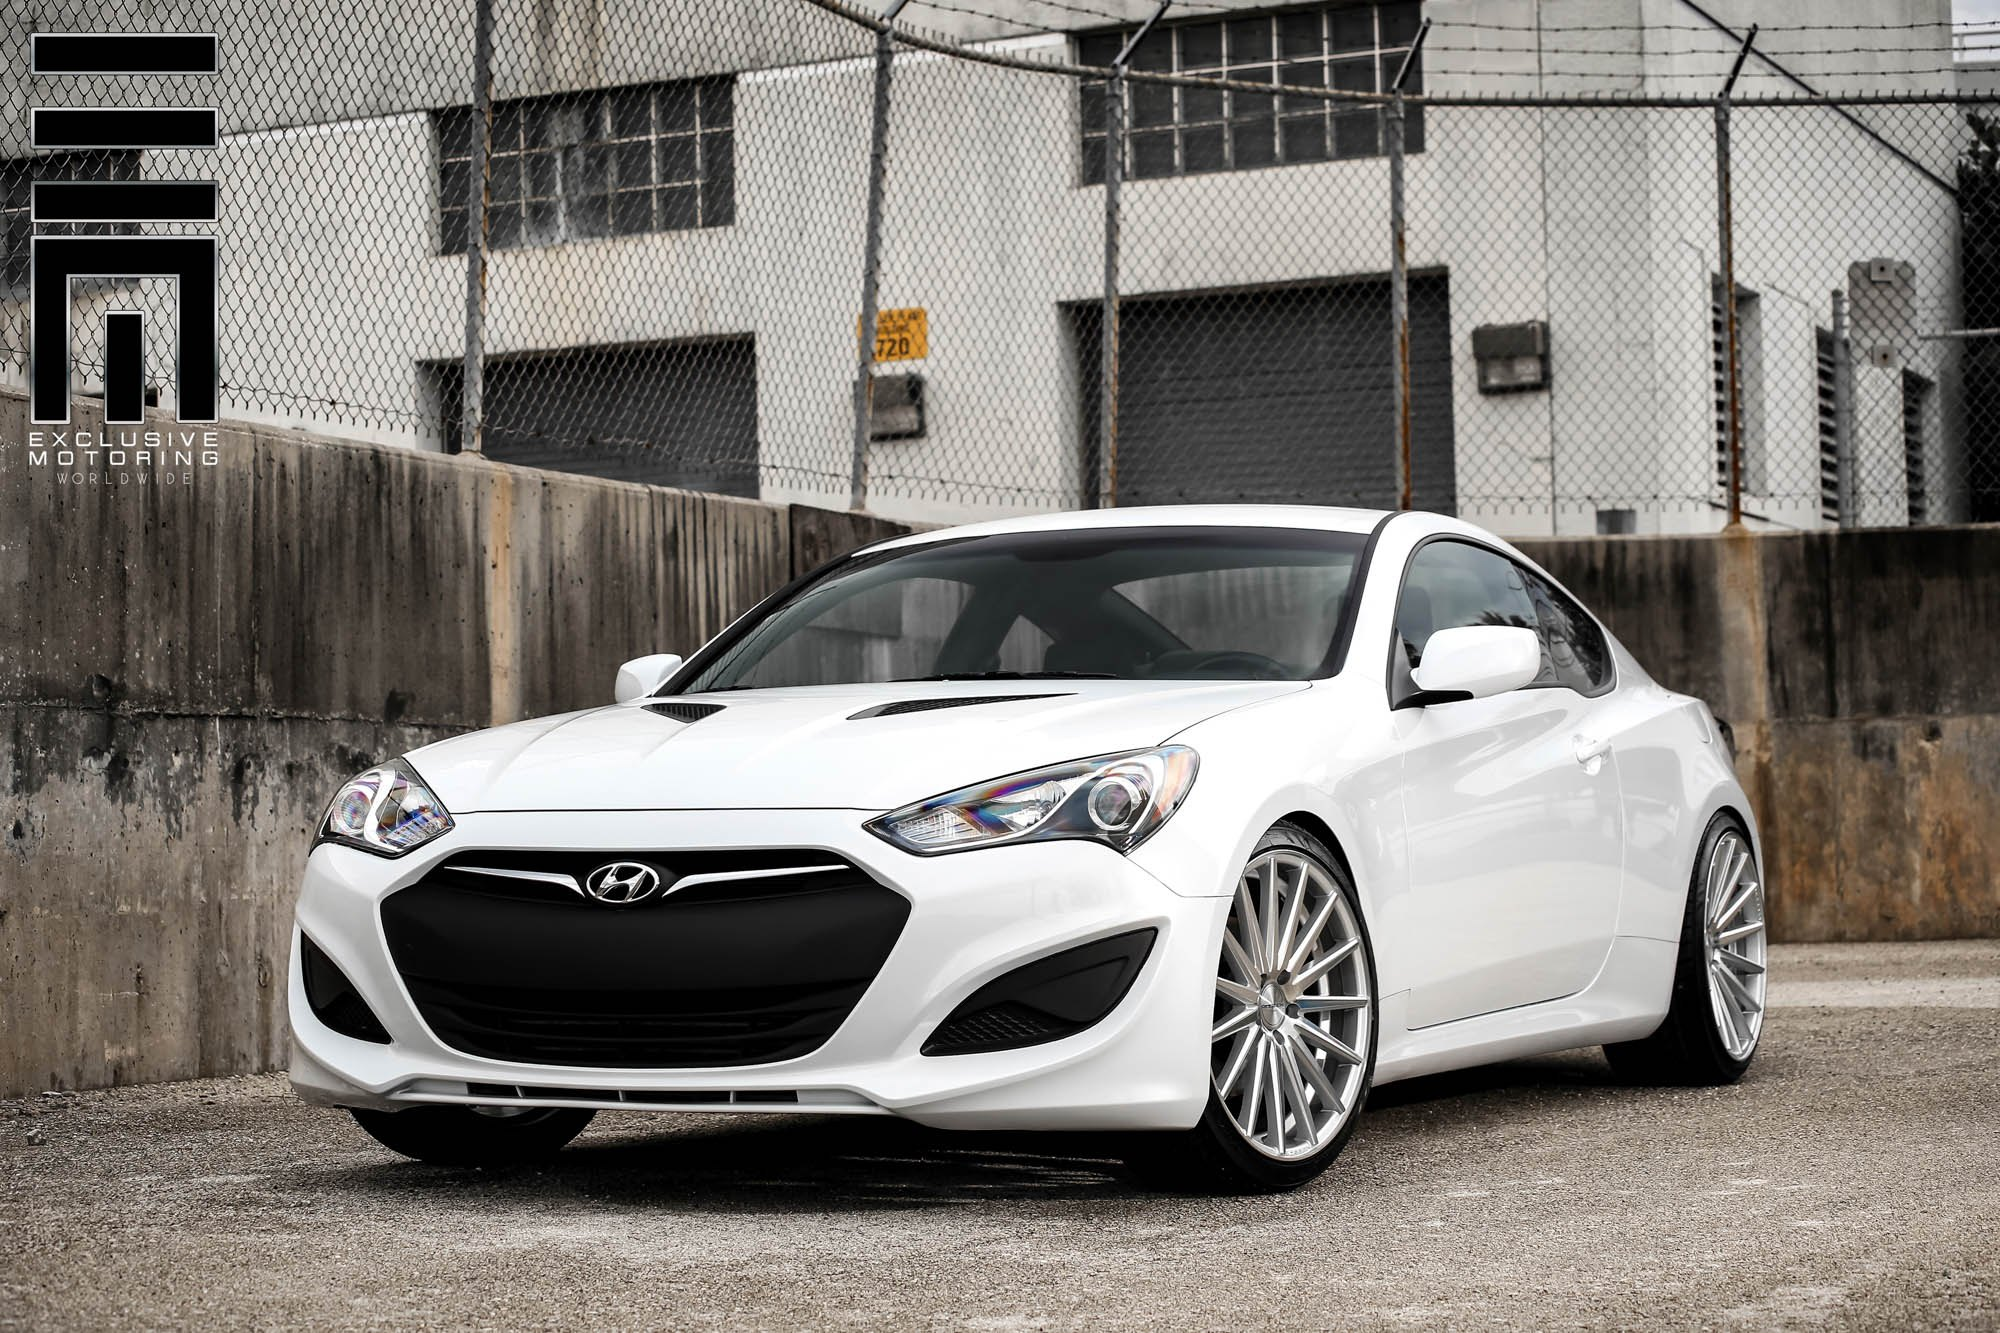 aftermarket rear diffuser on matte hyundai genesis coupe. Black Bedroom Furniture Sets. Home Design Ideas